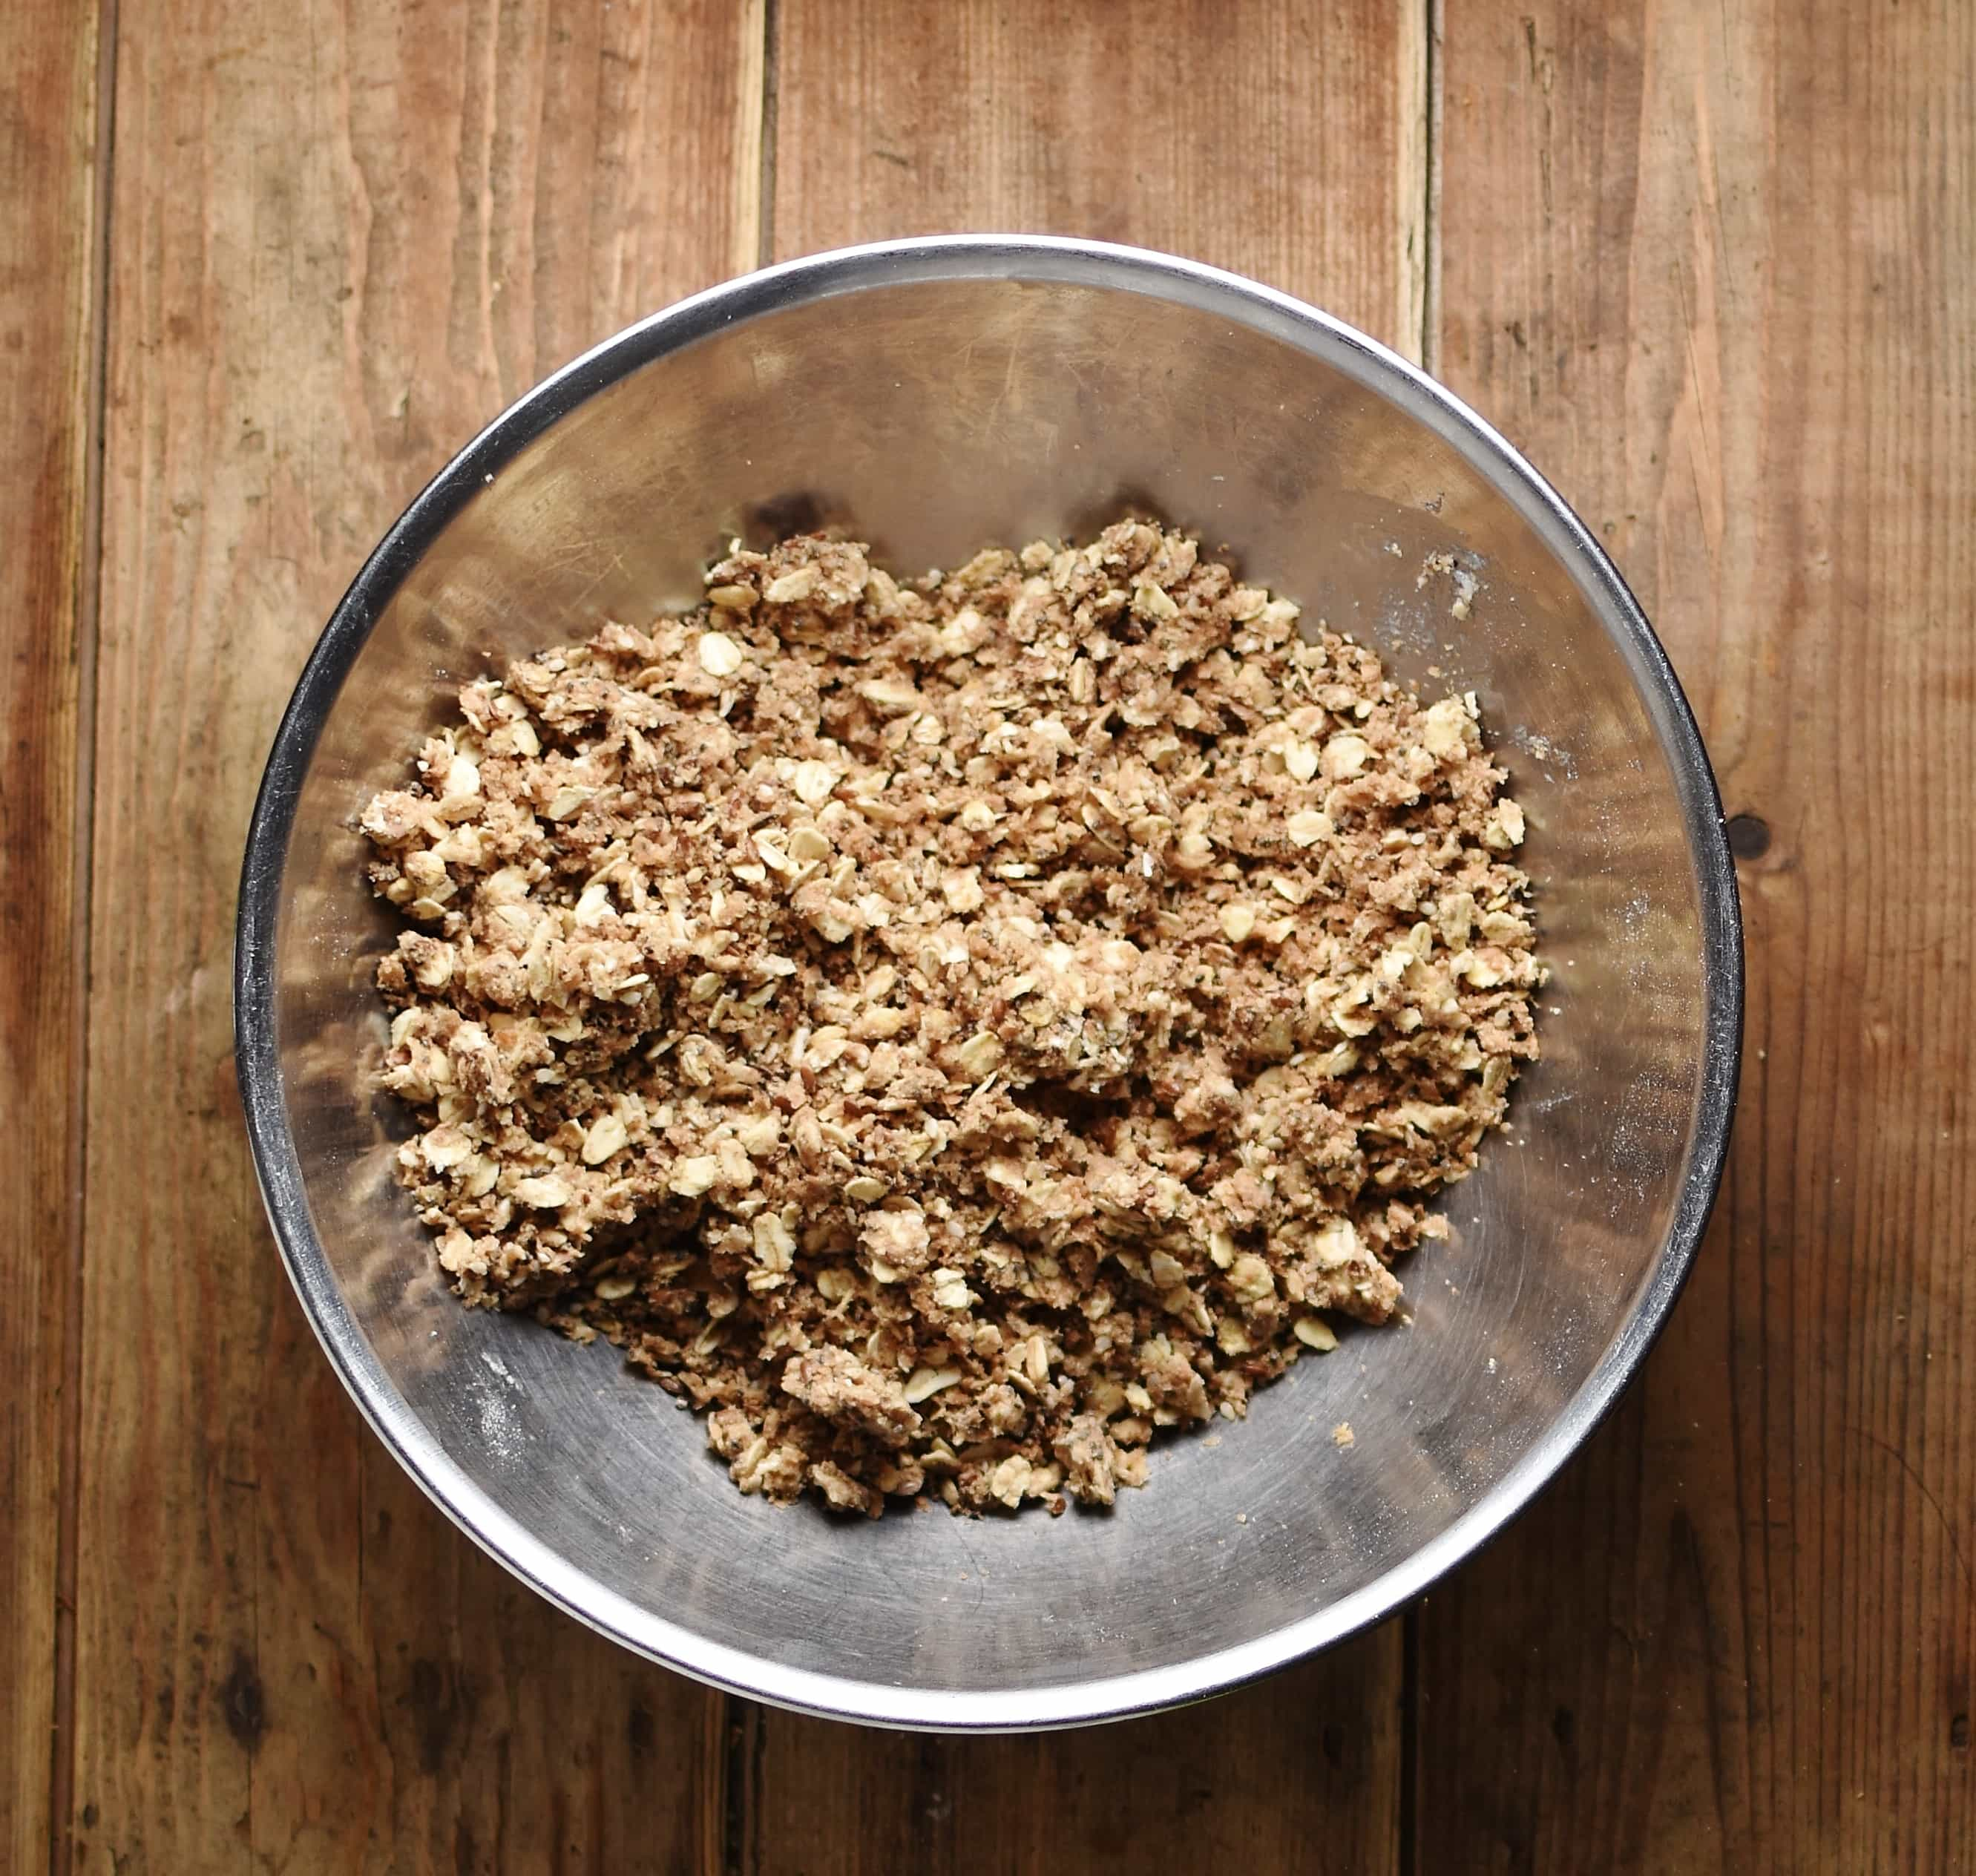 Crumble topping inside metal bowl.